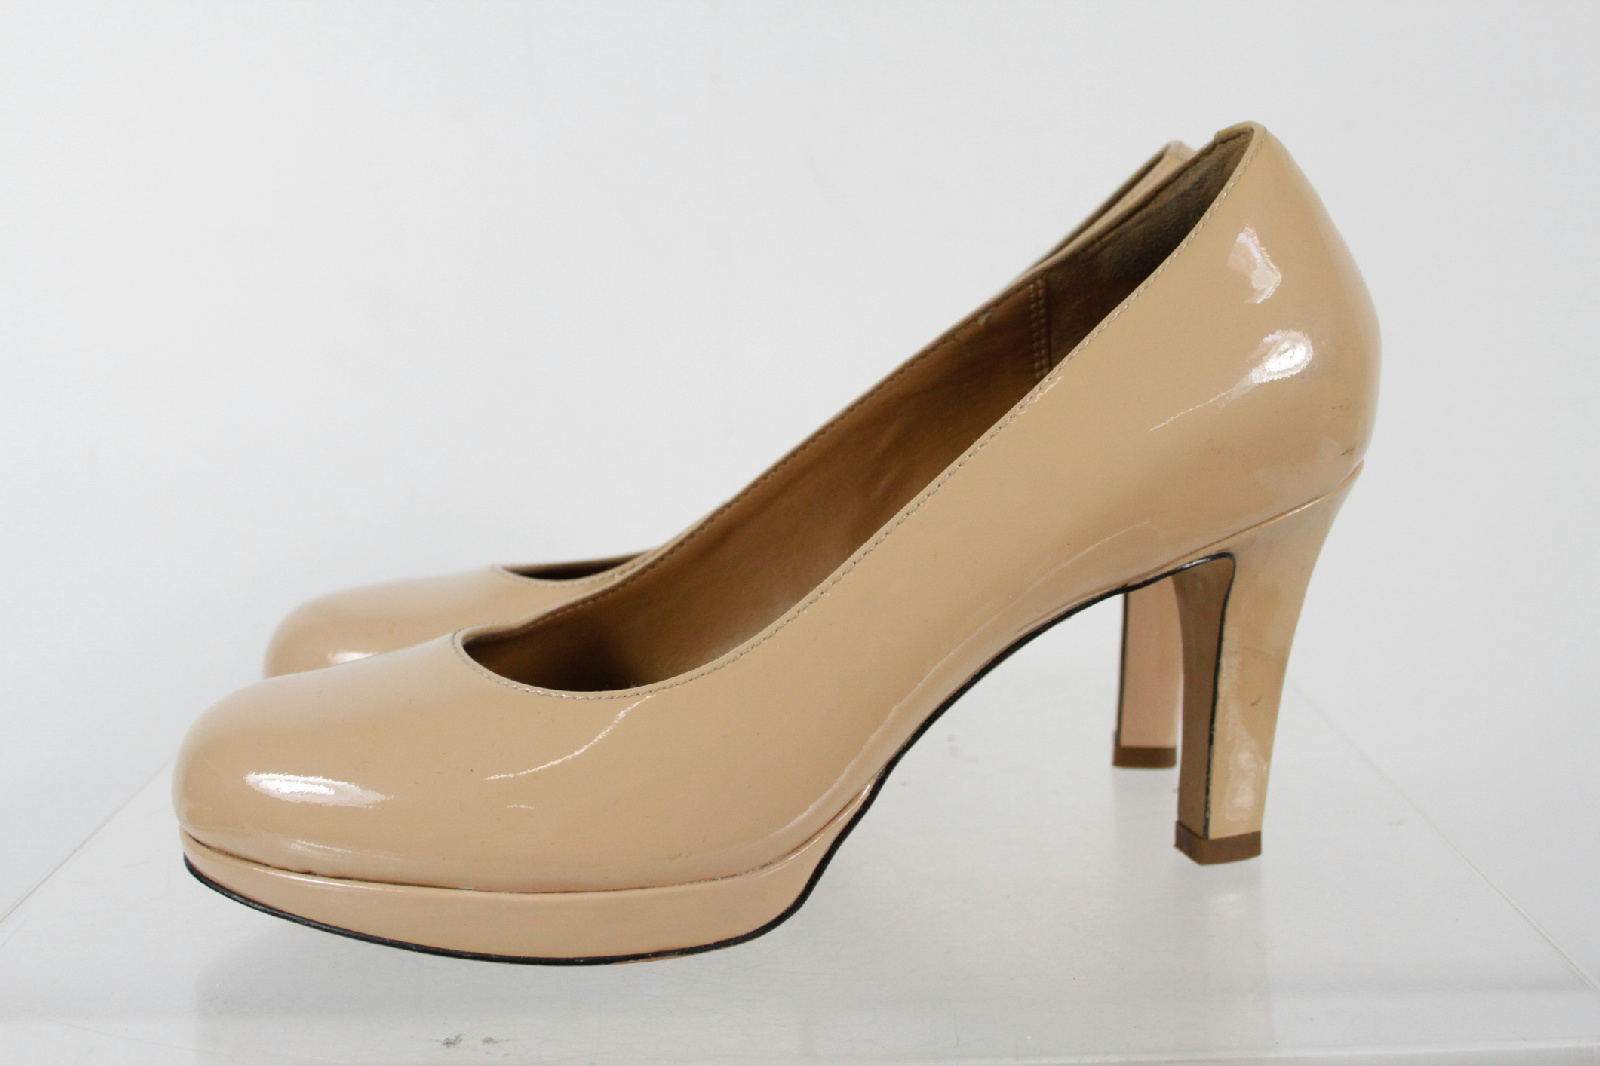 Second-hand Anouk patent leather heels Jimmy Choo Beige in Patent leather available. Buy your anouk patent leather heels Jimmy Choo on Vestiaire Collective, the .